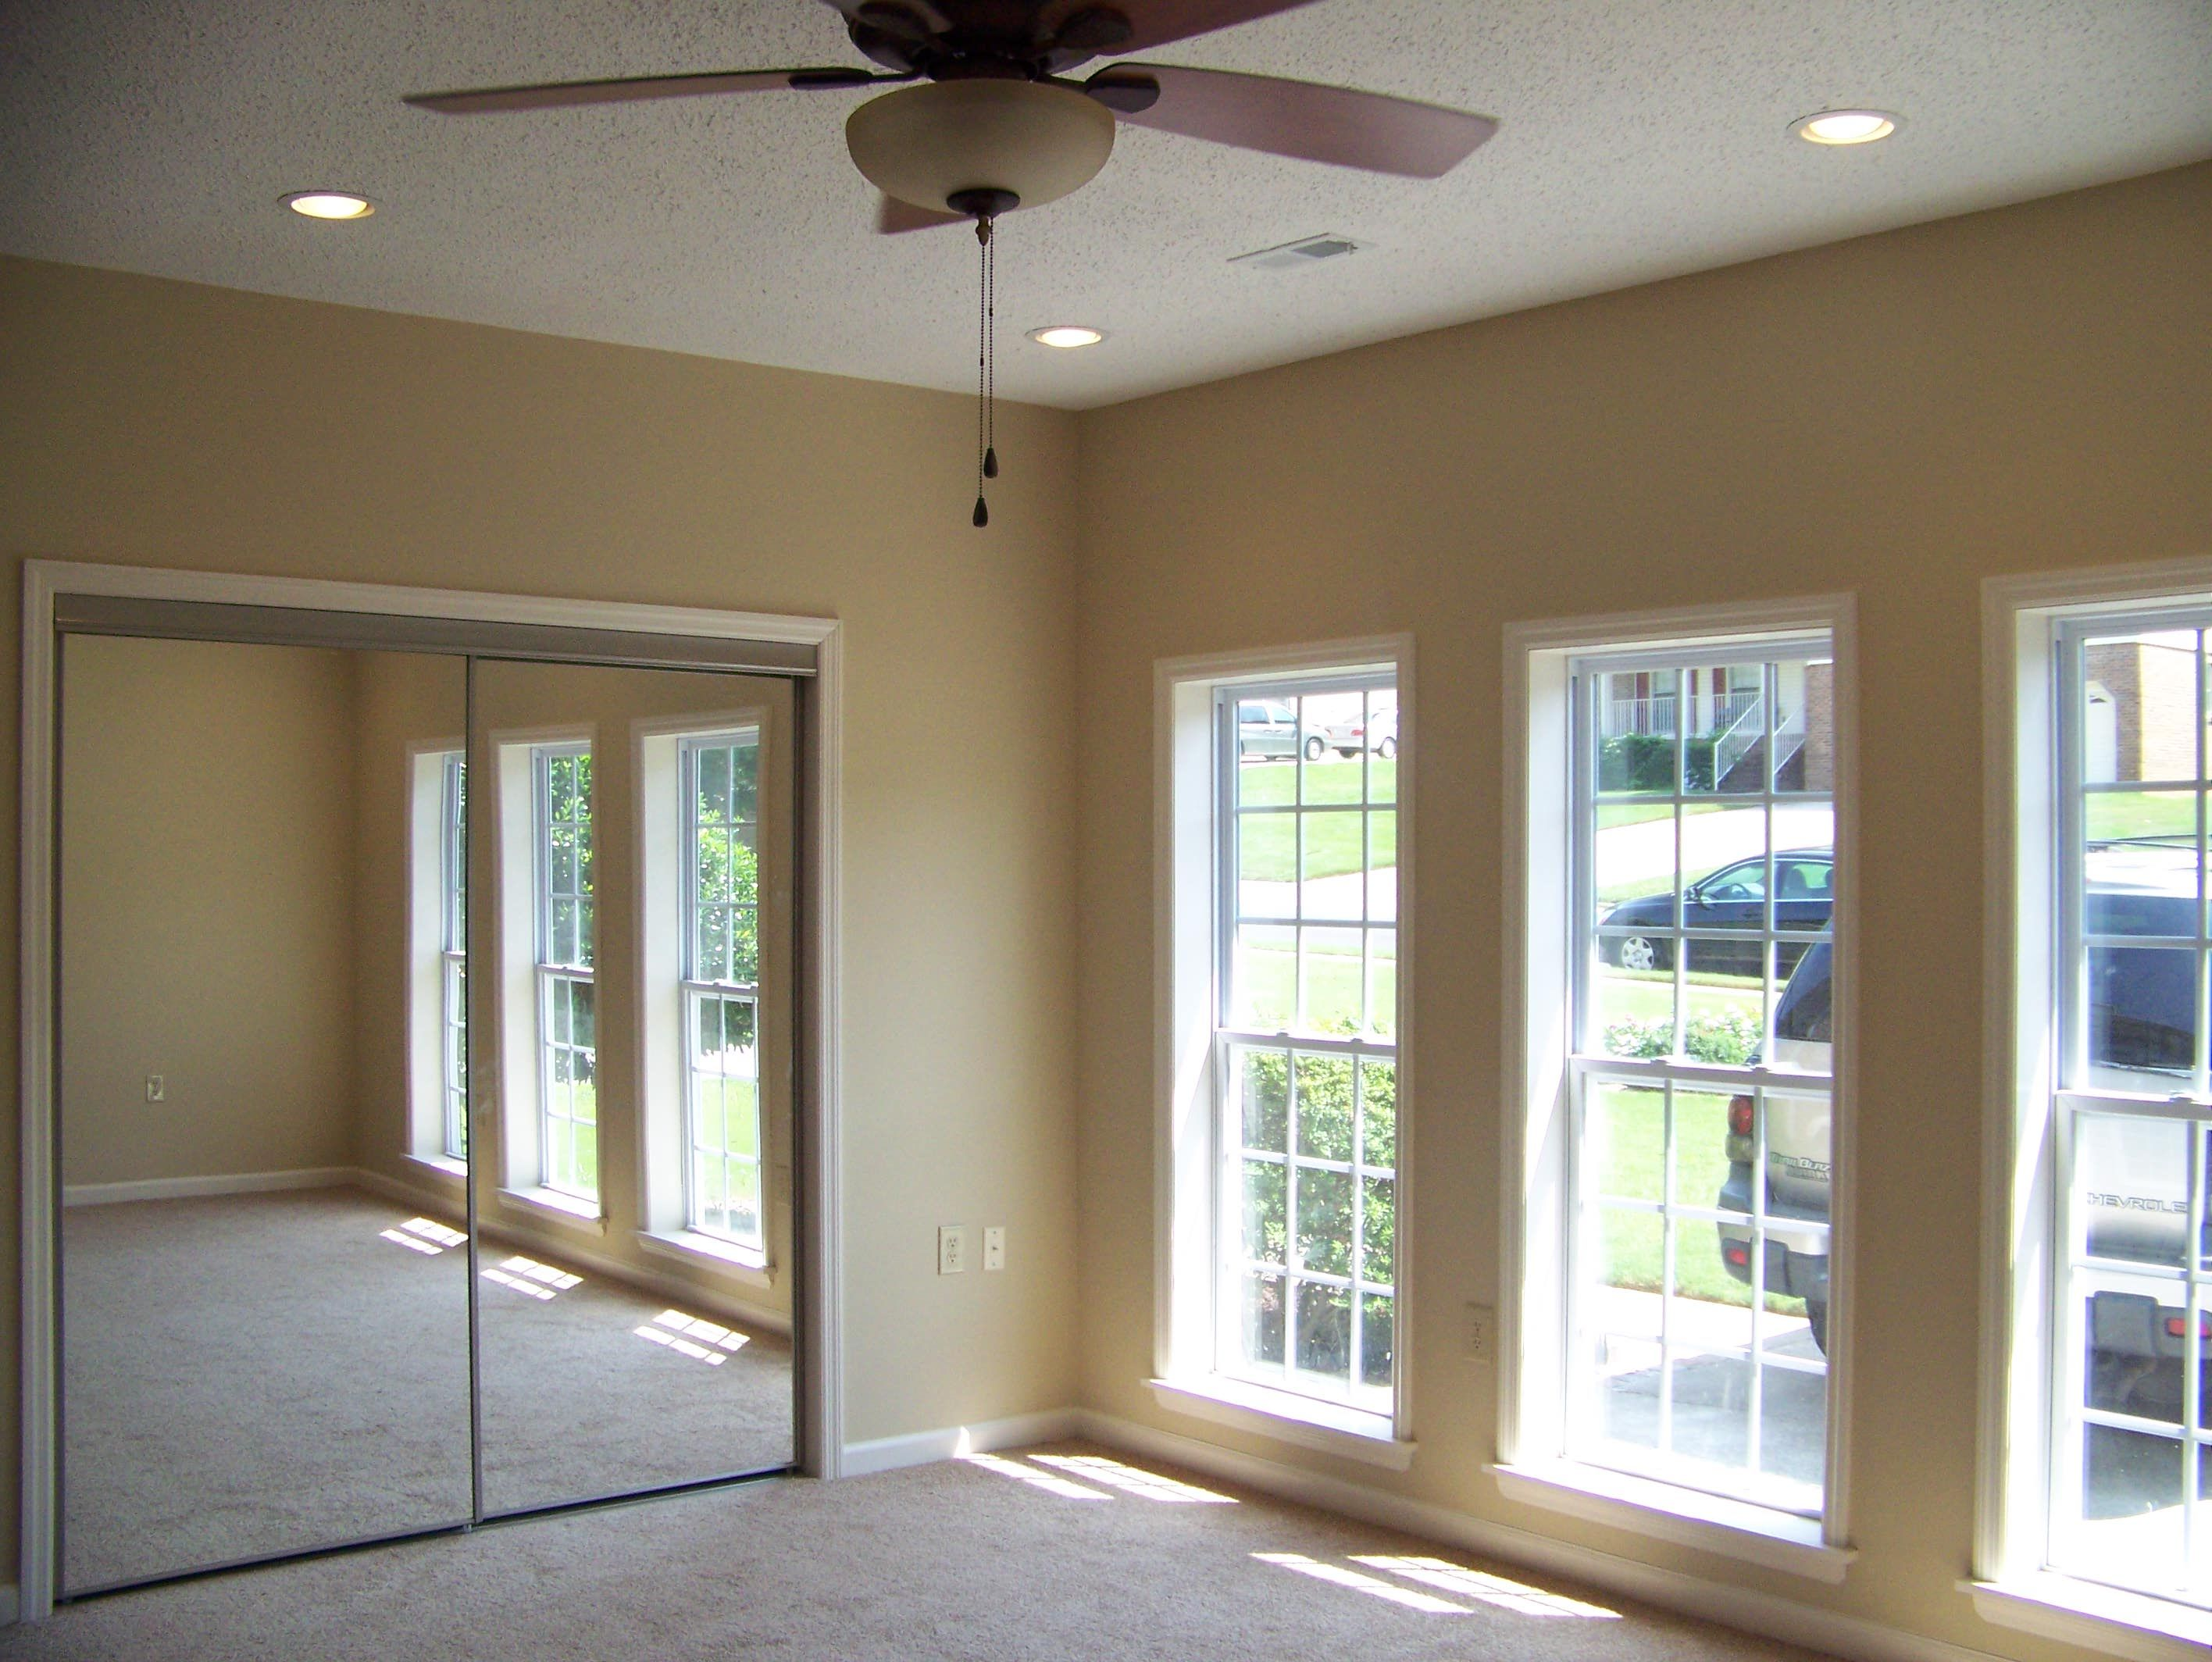 Garage Into Family Room : Renovation Family Room Ideas, Remodel ...